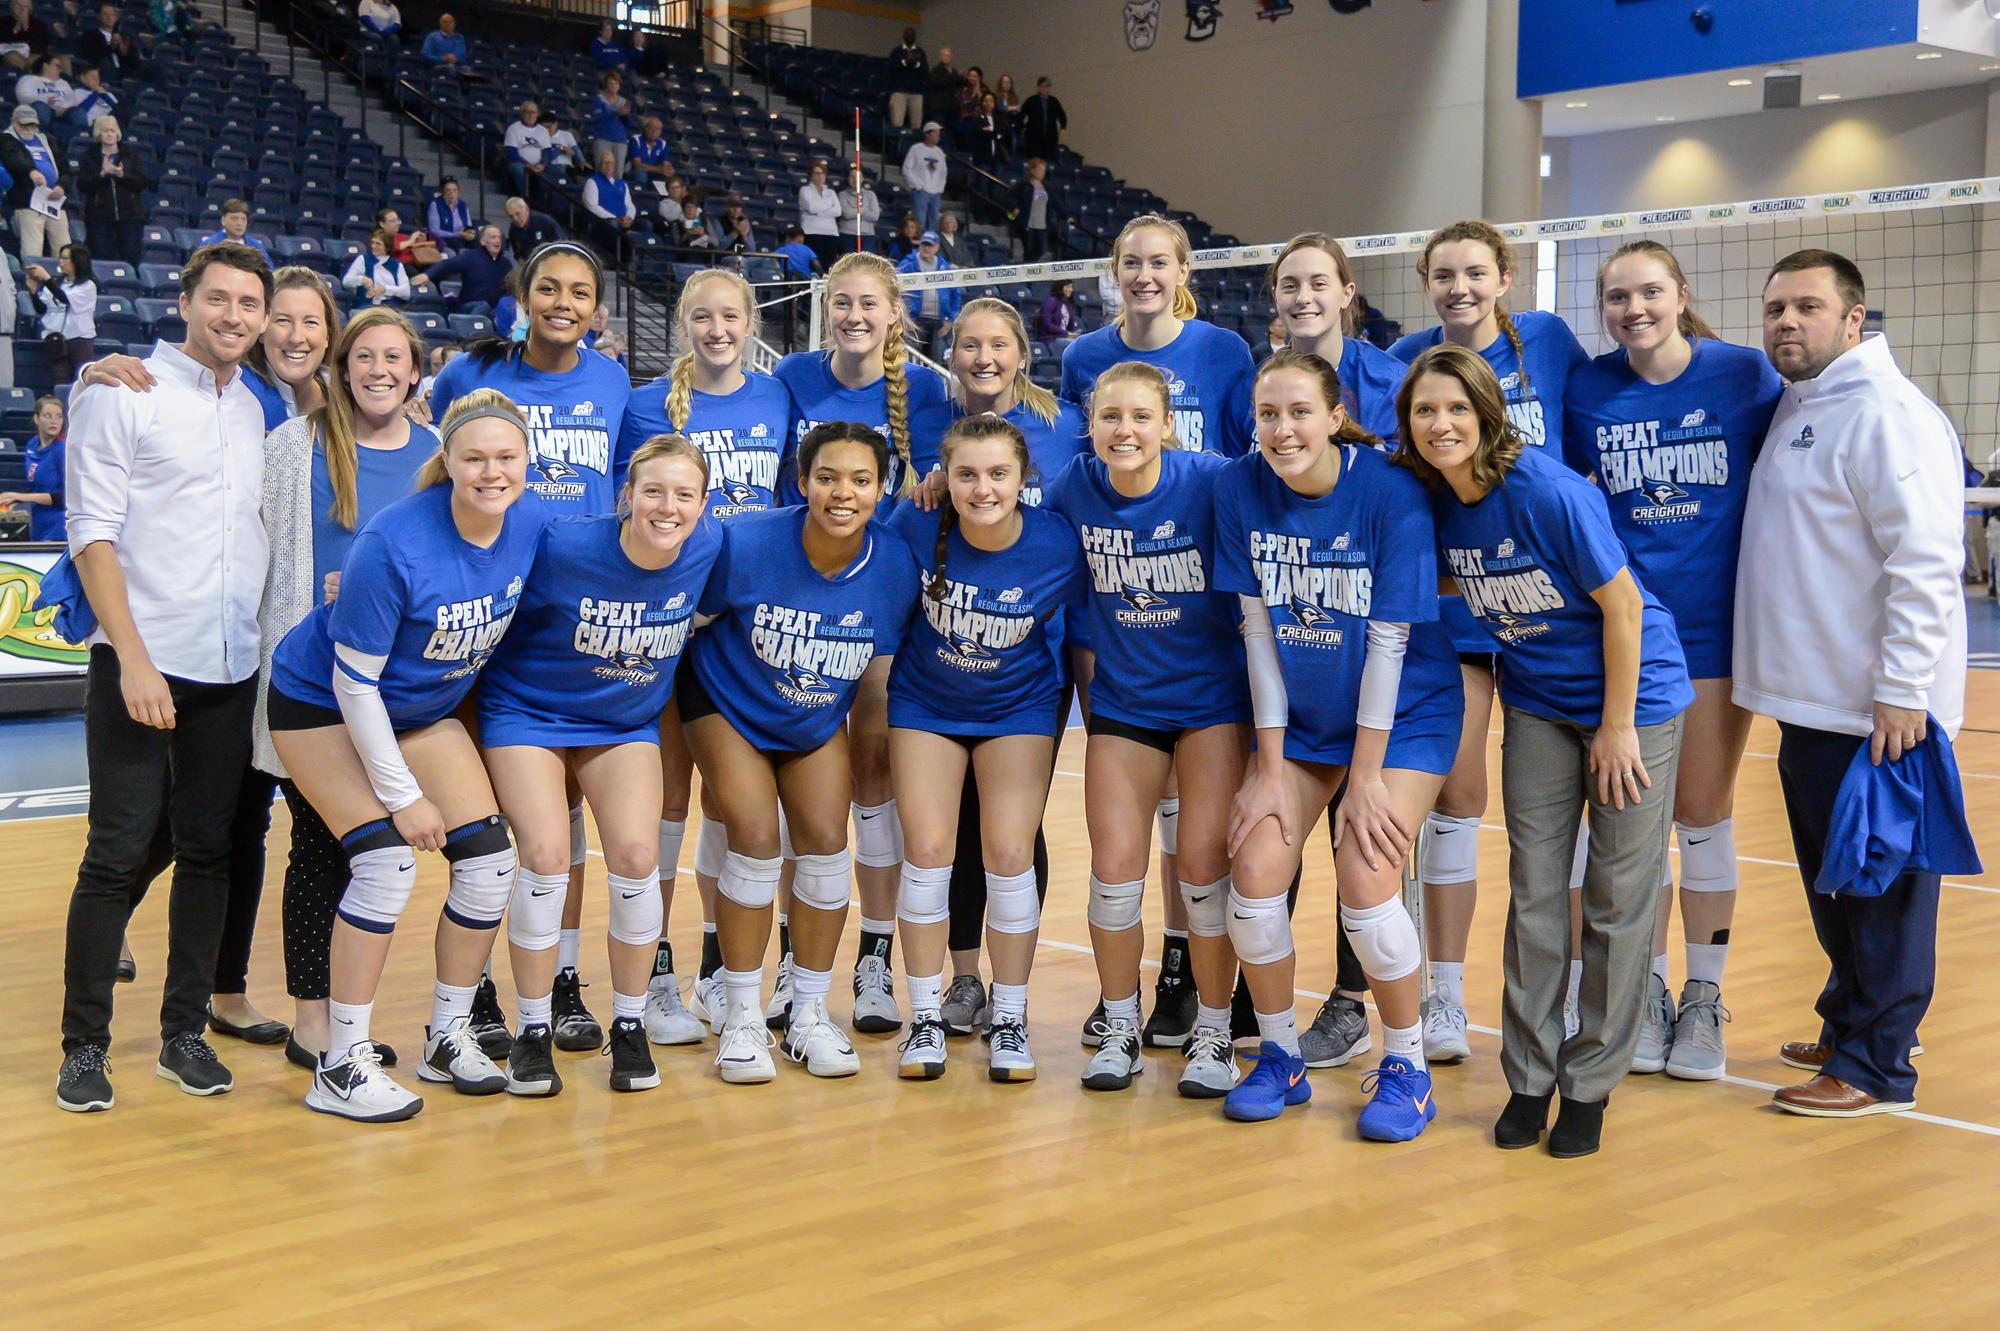 2019 Creighton Volleyball Season Recap Creighton University Athletics